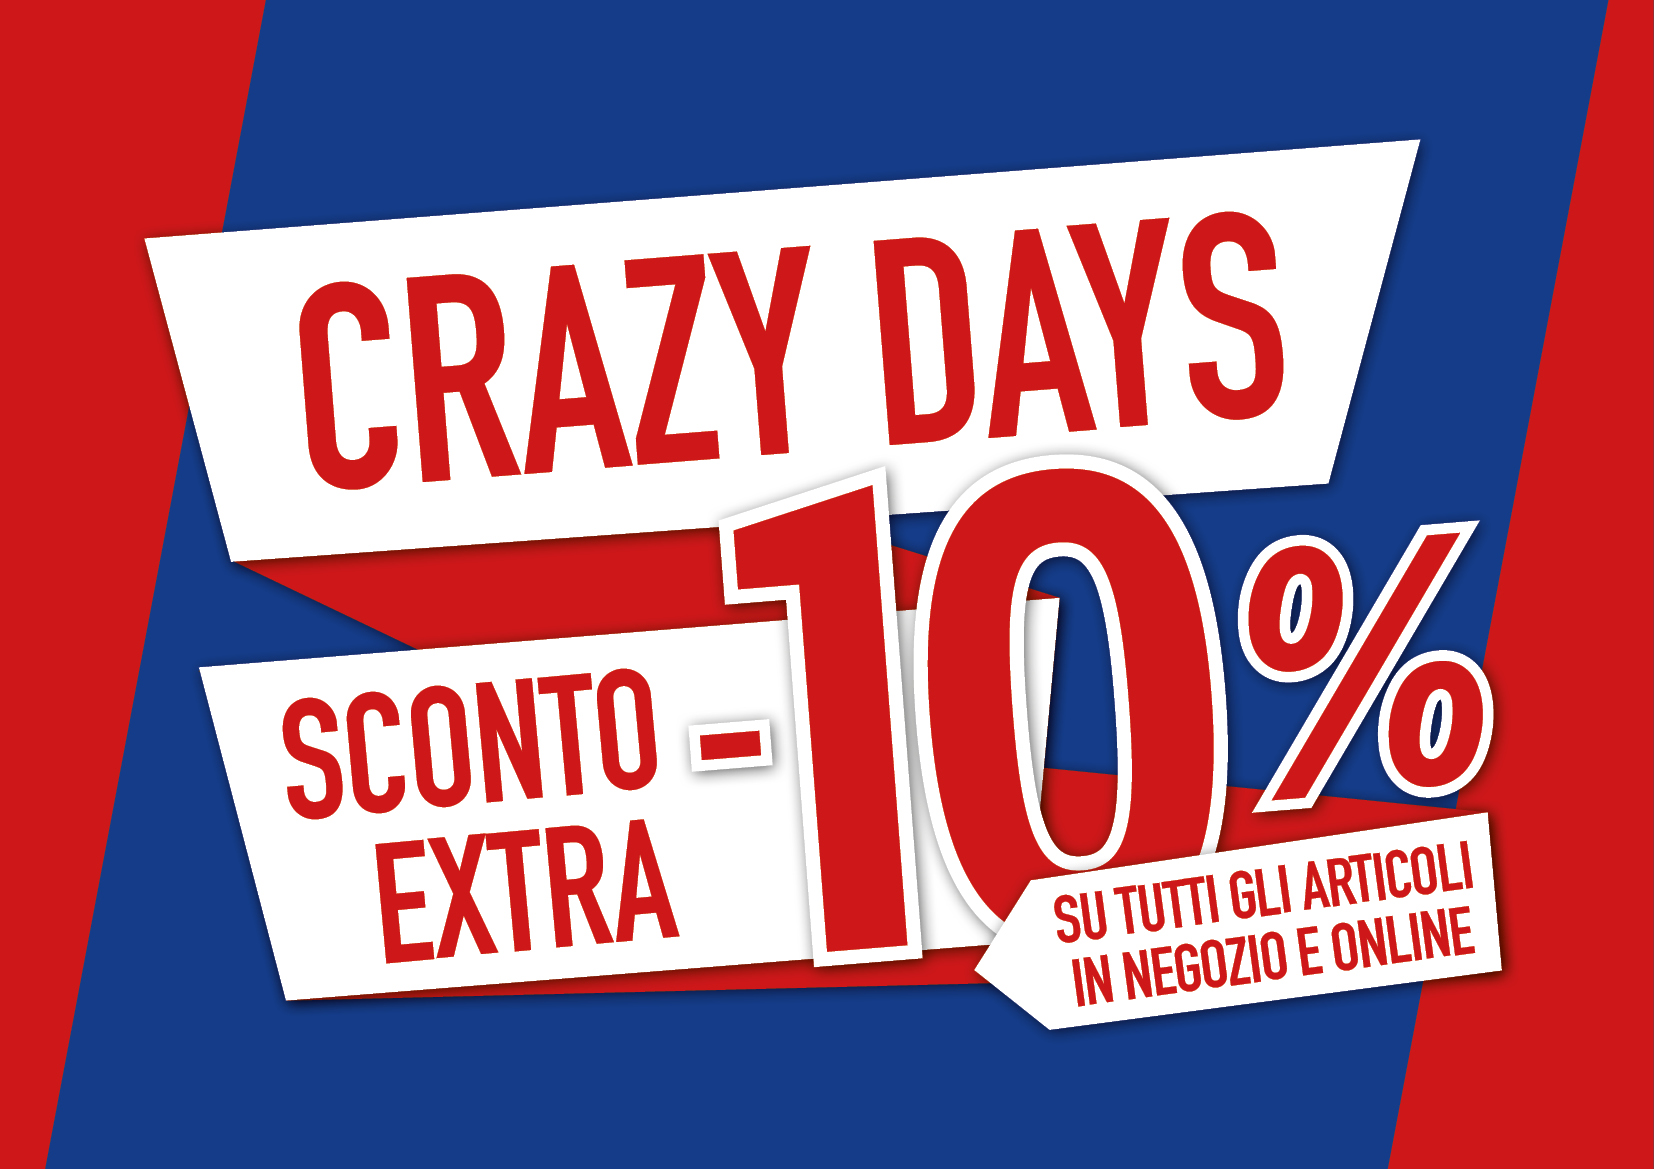 nencini_it: Crazy Days Sconto Extra 10% | Milled